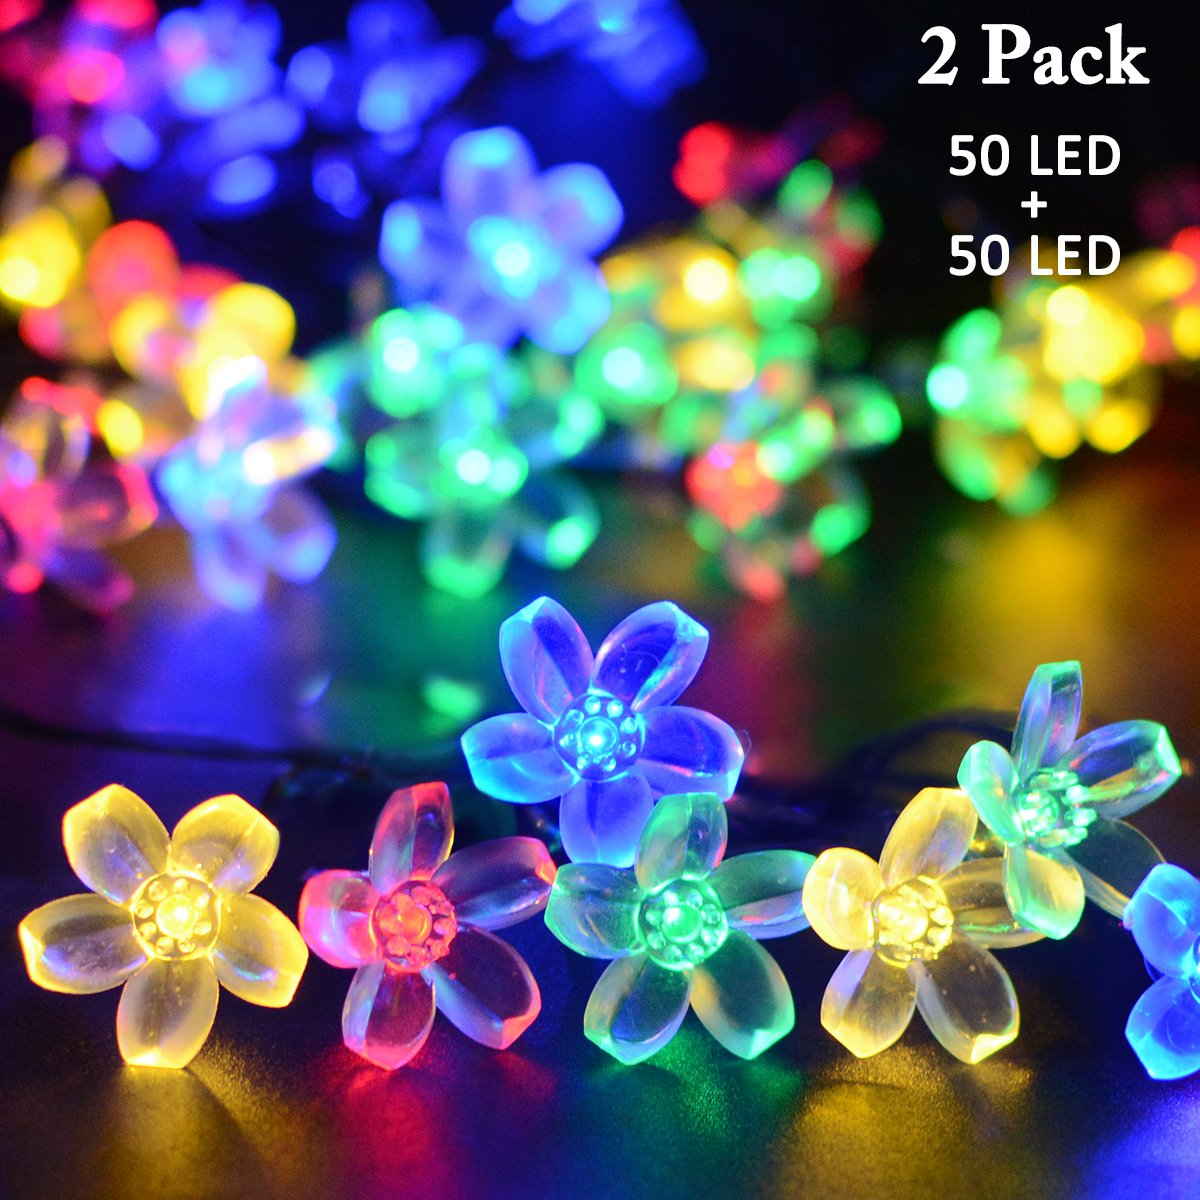 vmanoo solar outdoor christmas string lights 21ft 50 led fairy flower blossom decorative light for indoor garden patio party xmas tree decorations 2 pack